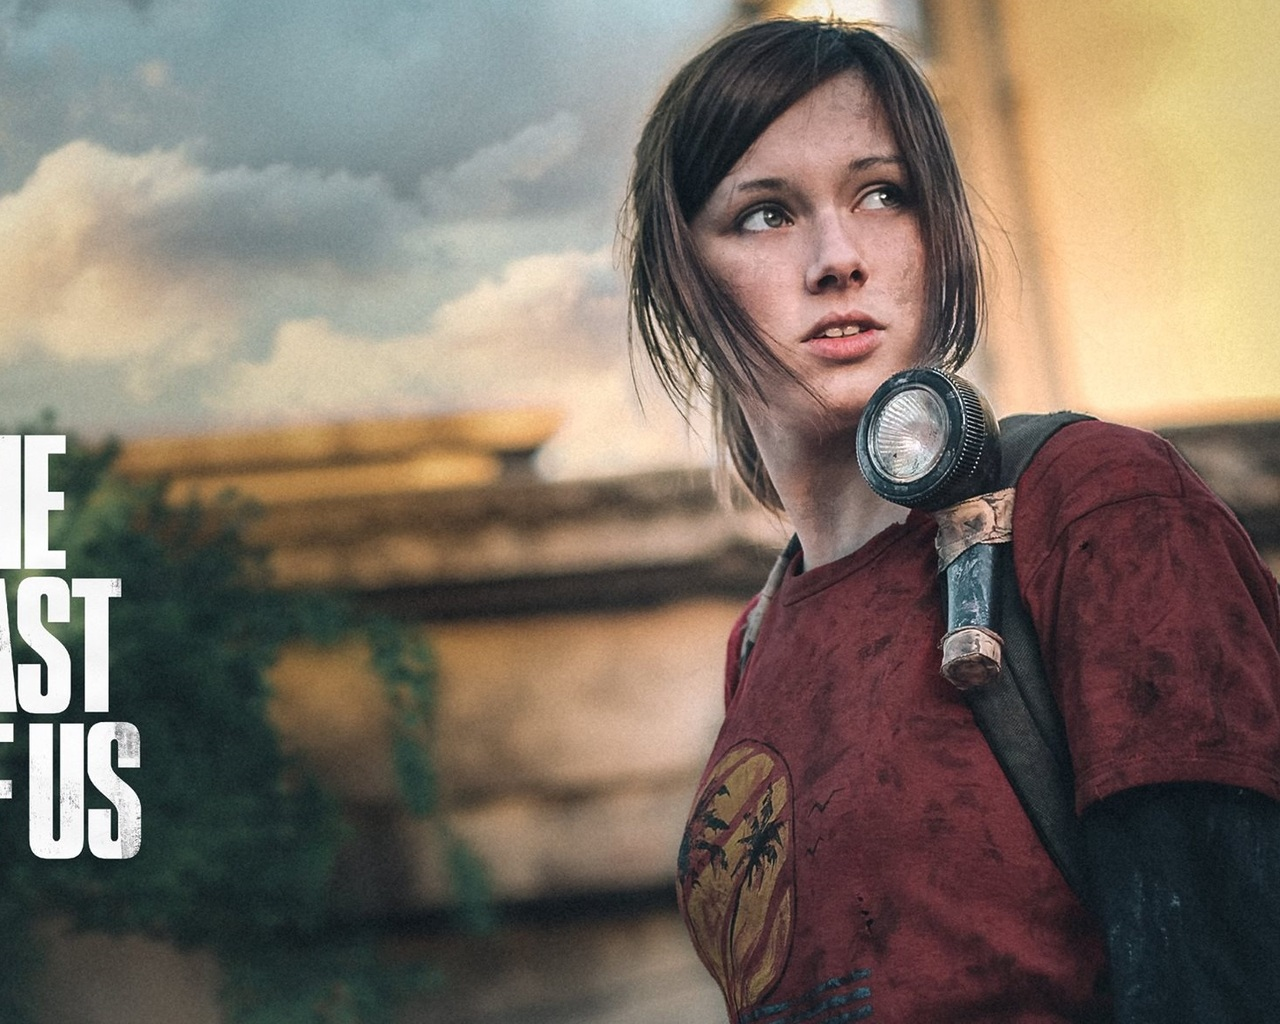 1280x1024 The Last Of Us Cosplay 1280x1024 Resolution Hd 4k